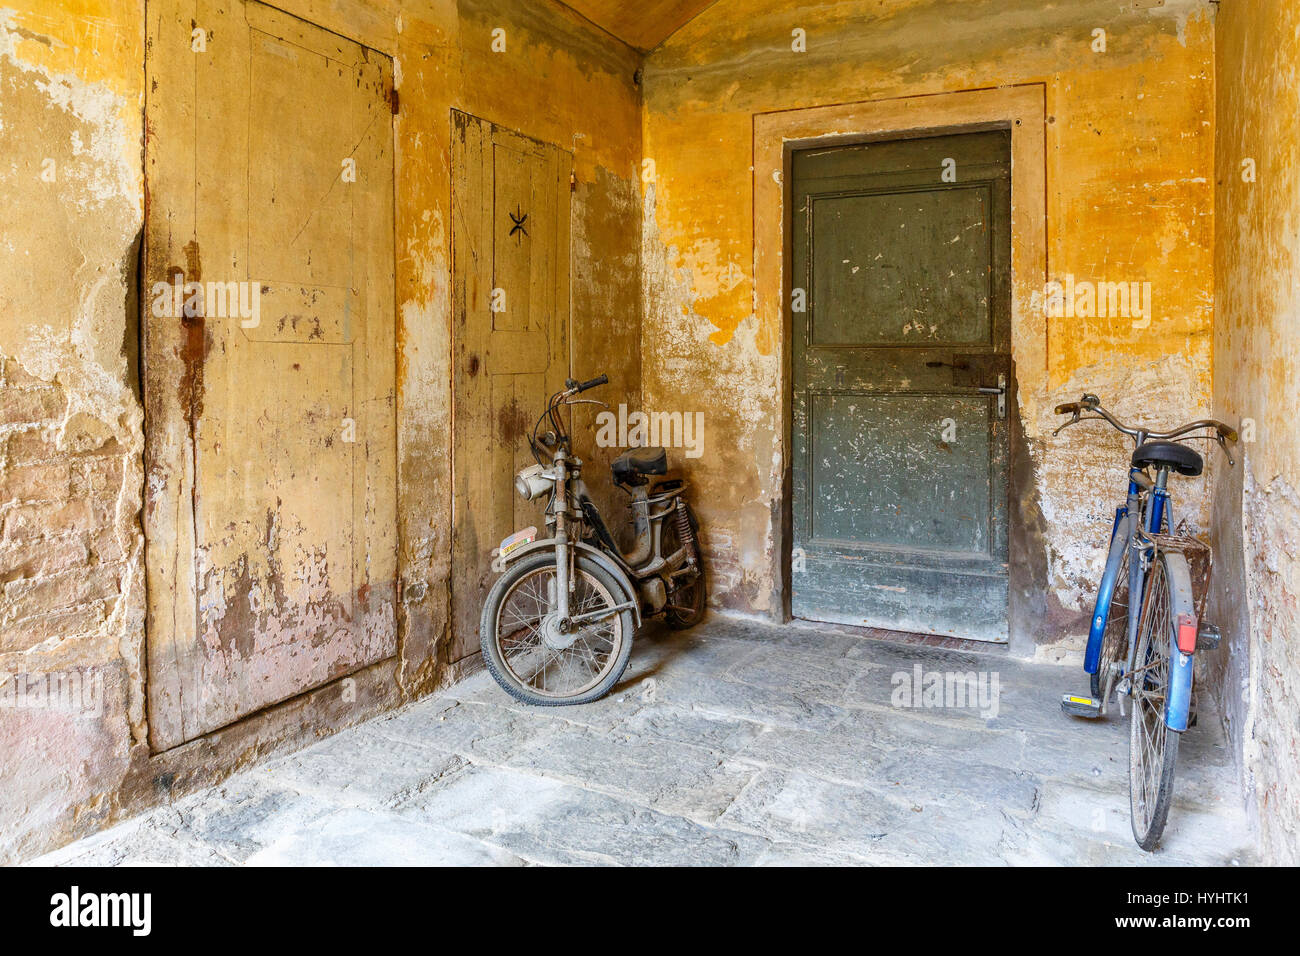 Bicycle and moped in an old garage - Stock Image